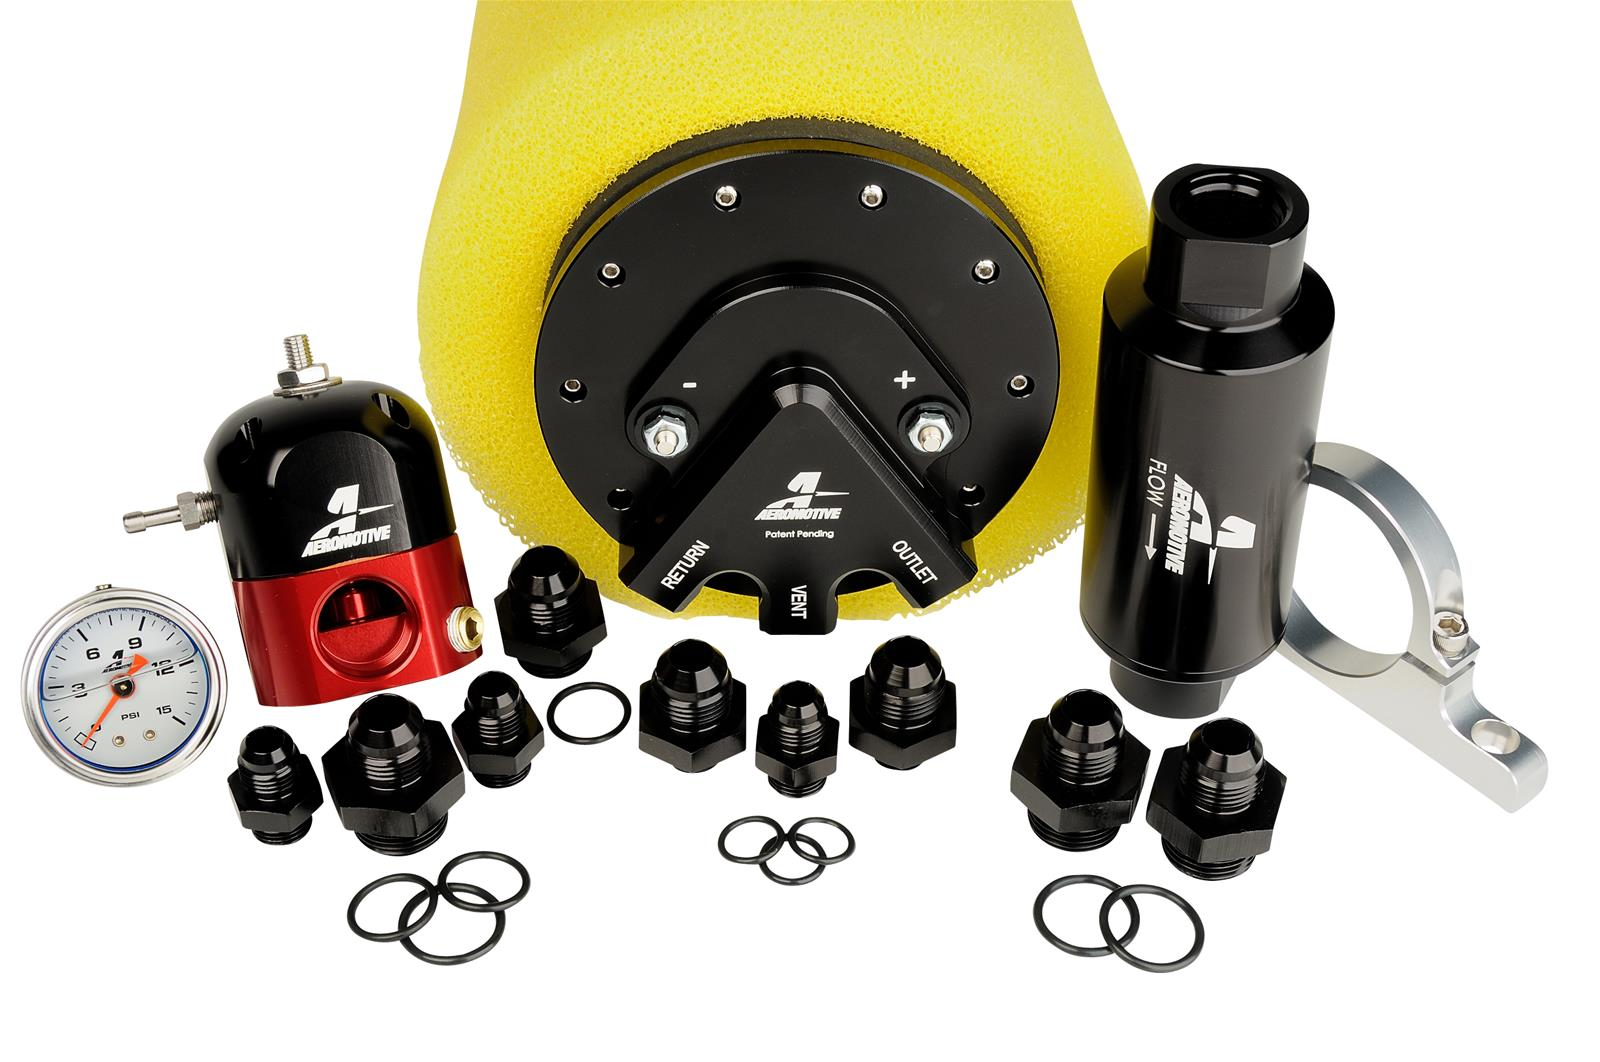 Aeromotive Phantom 200 Stealth Fuel Systems 17255 Free Shipping On Wiring Harness Orders Over 49 At Summit Racing